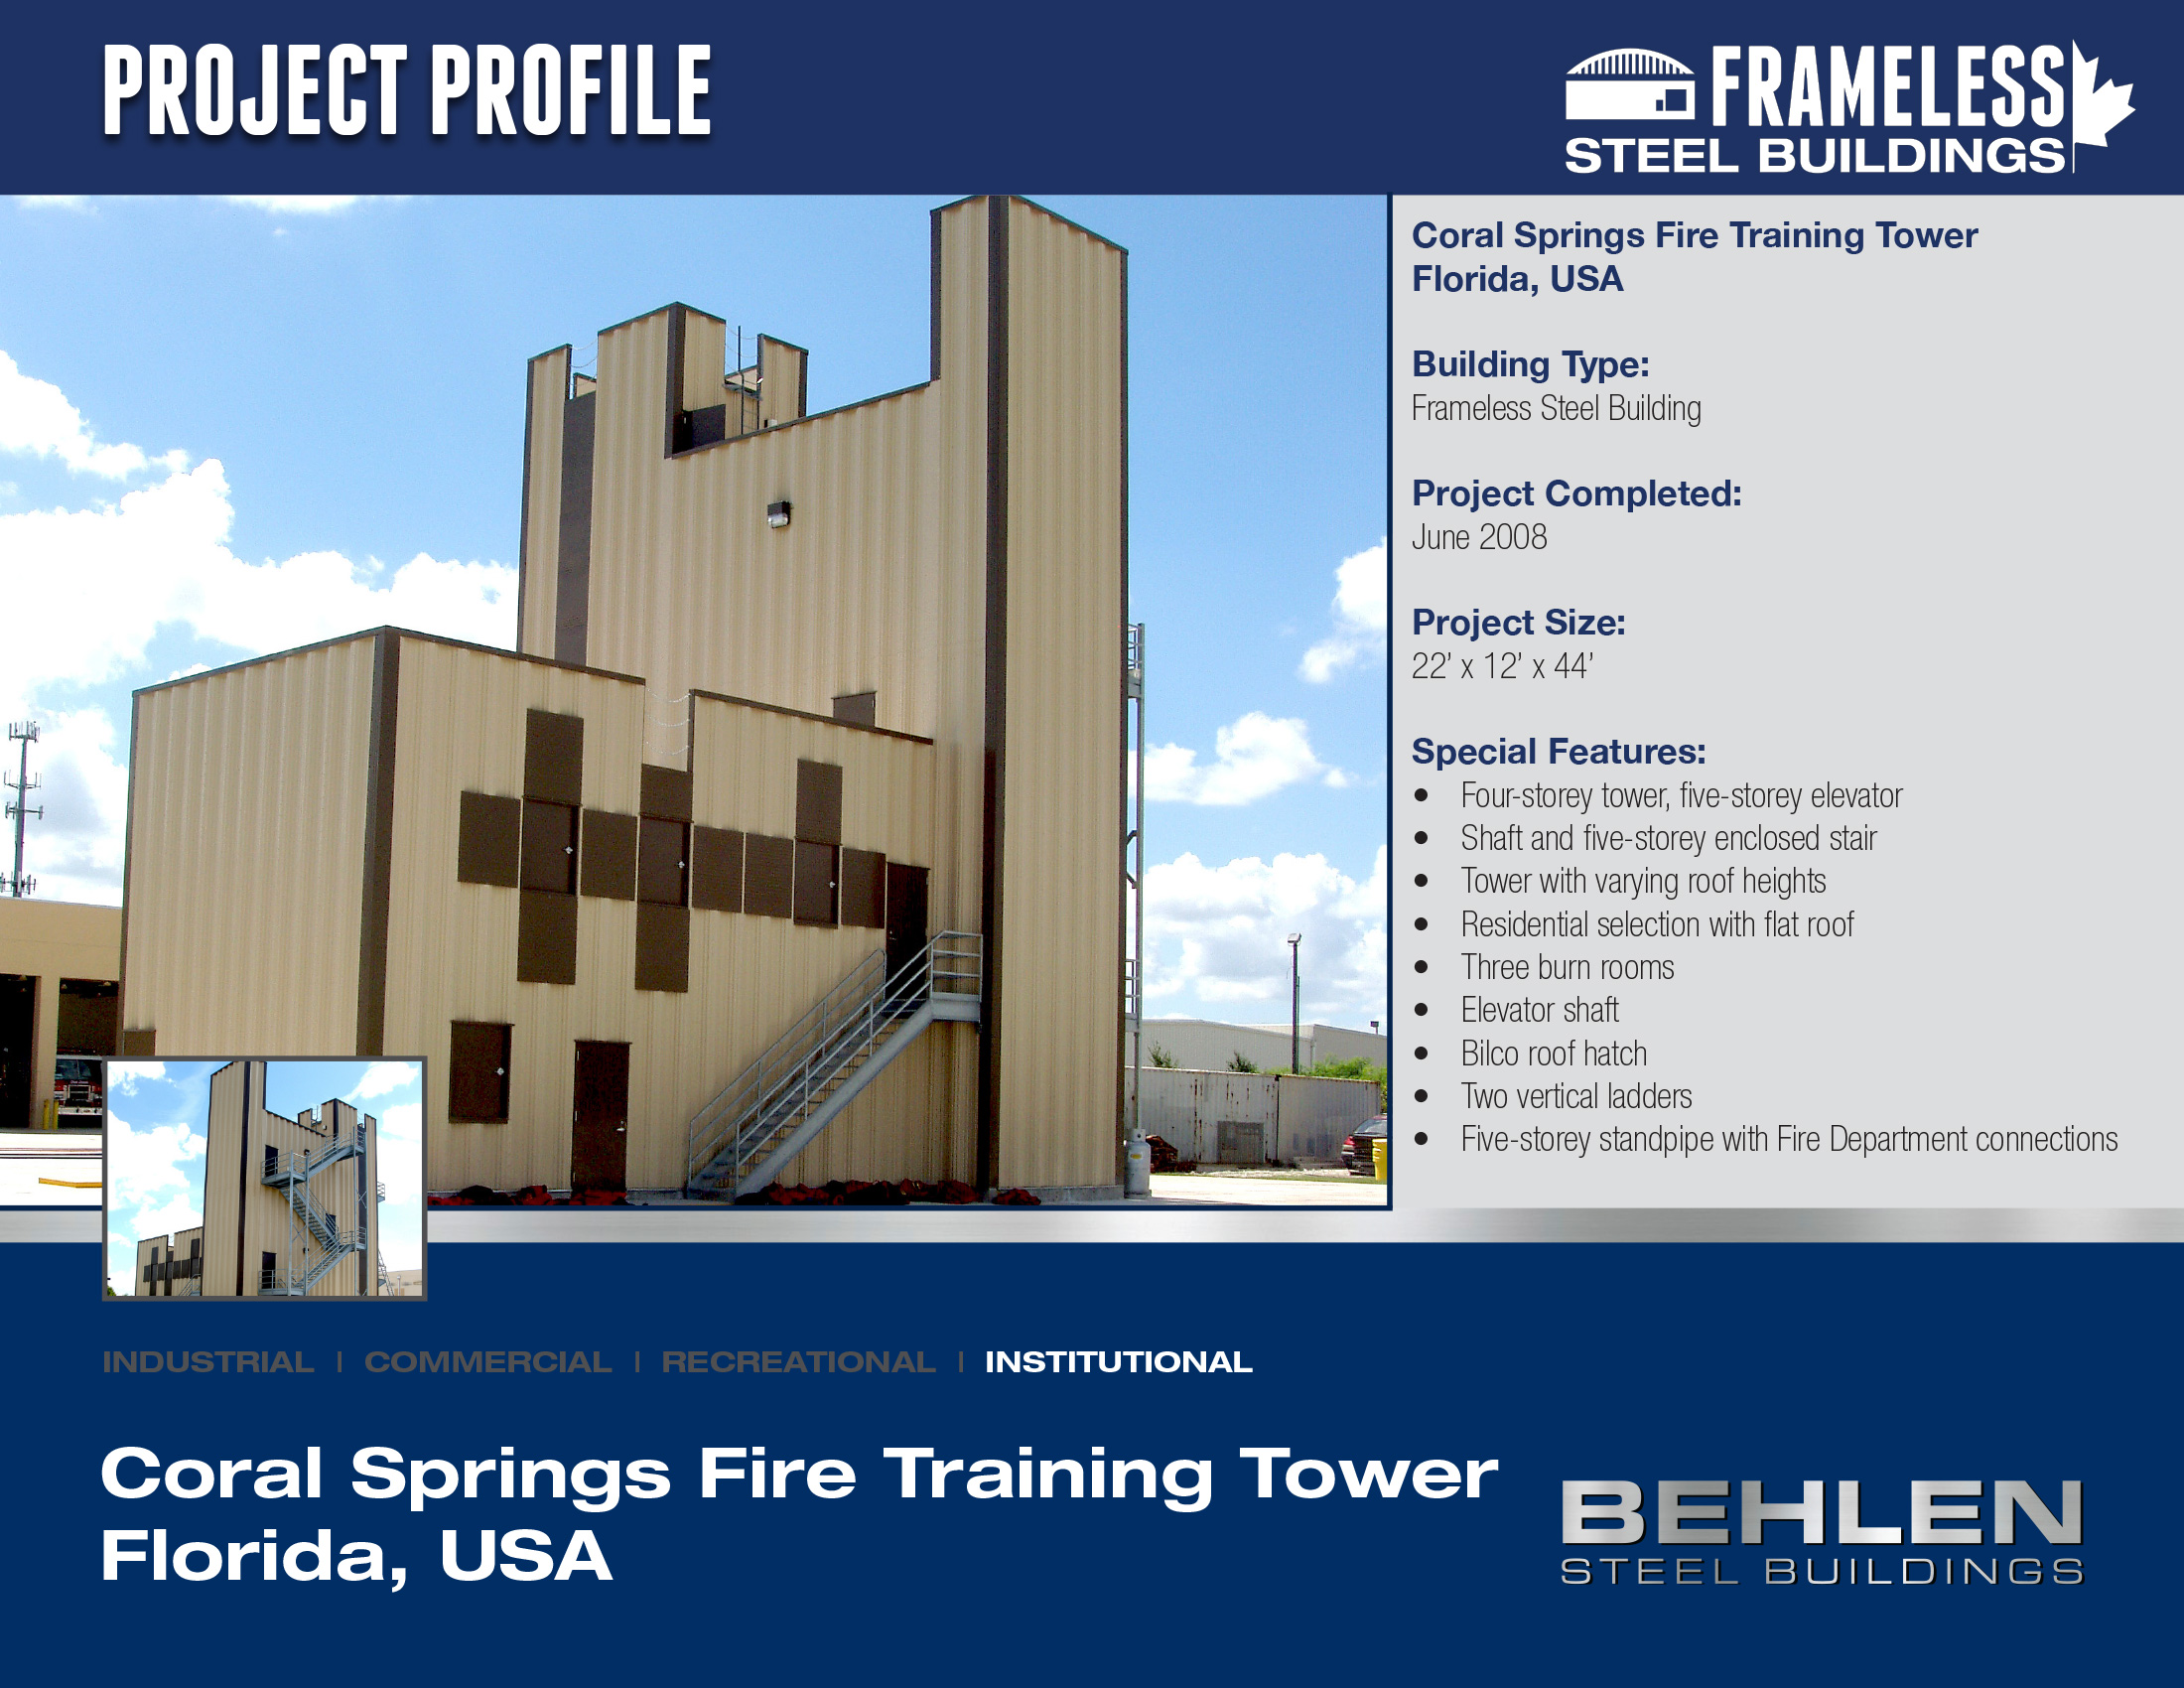 Coral Springs Fire Training Tower